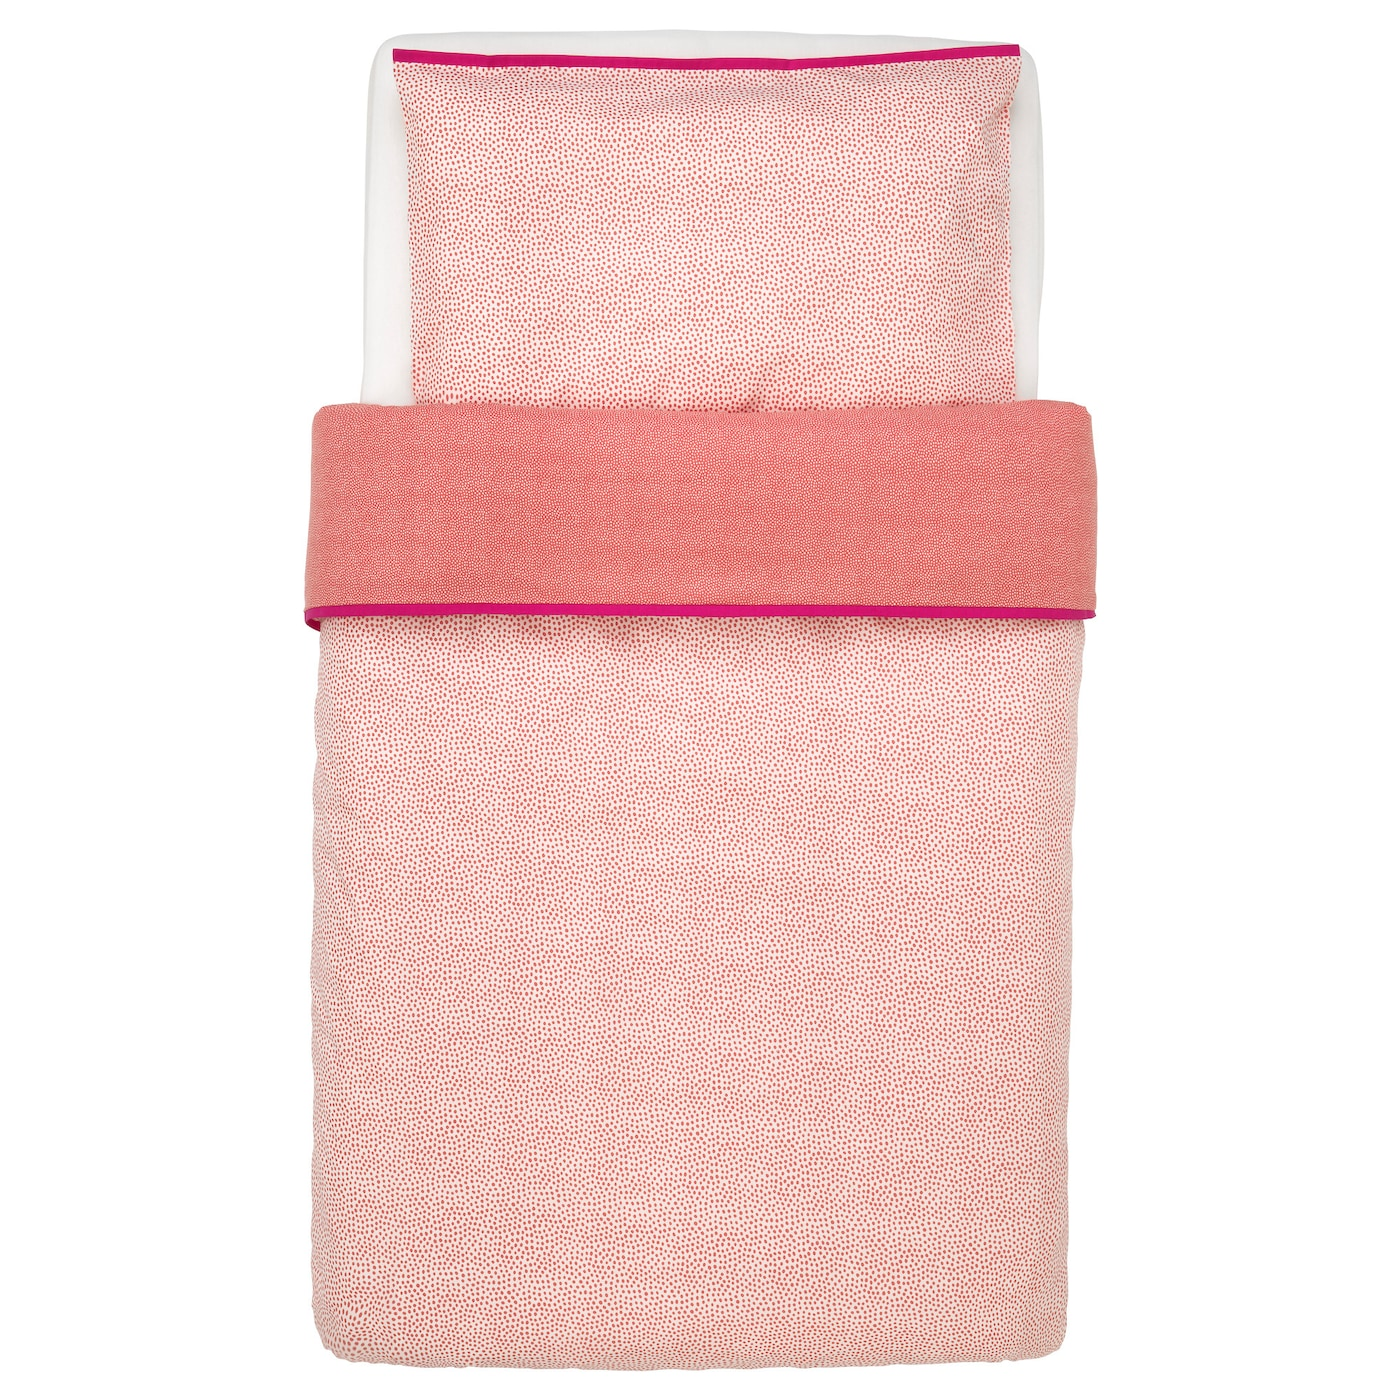 IKEA KLÄMMIG quilt cover/pillowcase for cot Easy to keep clean; machine wash hot (60°C).